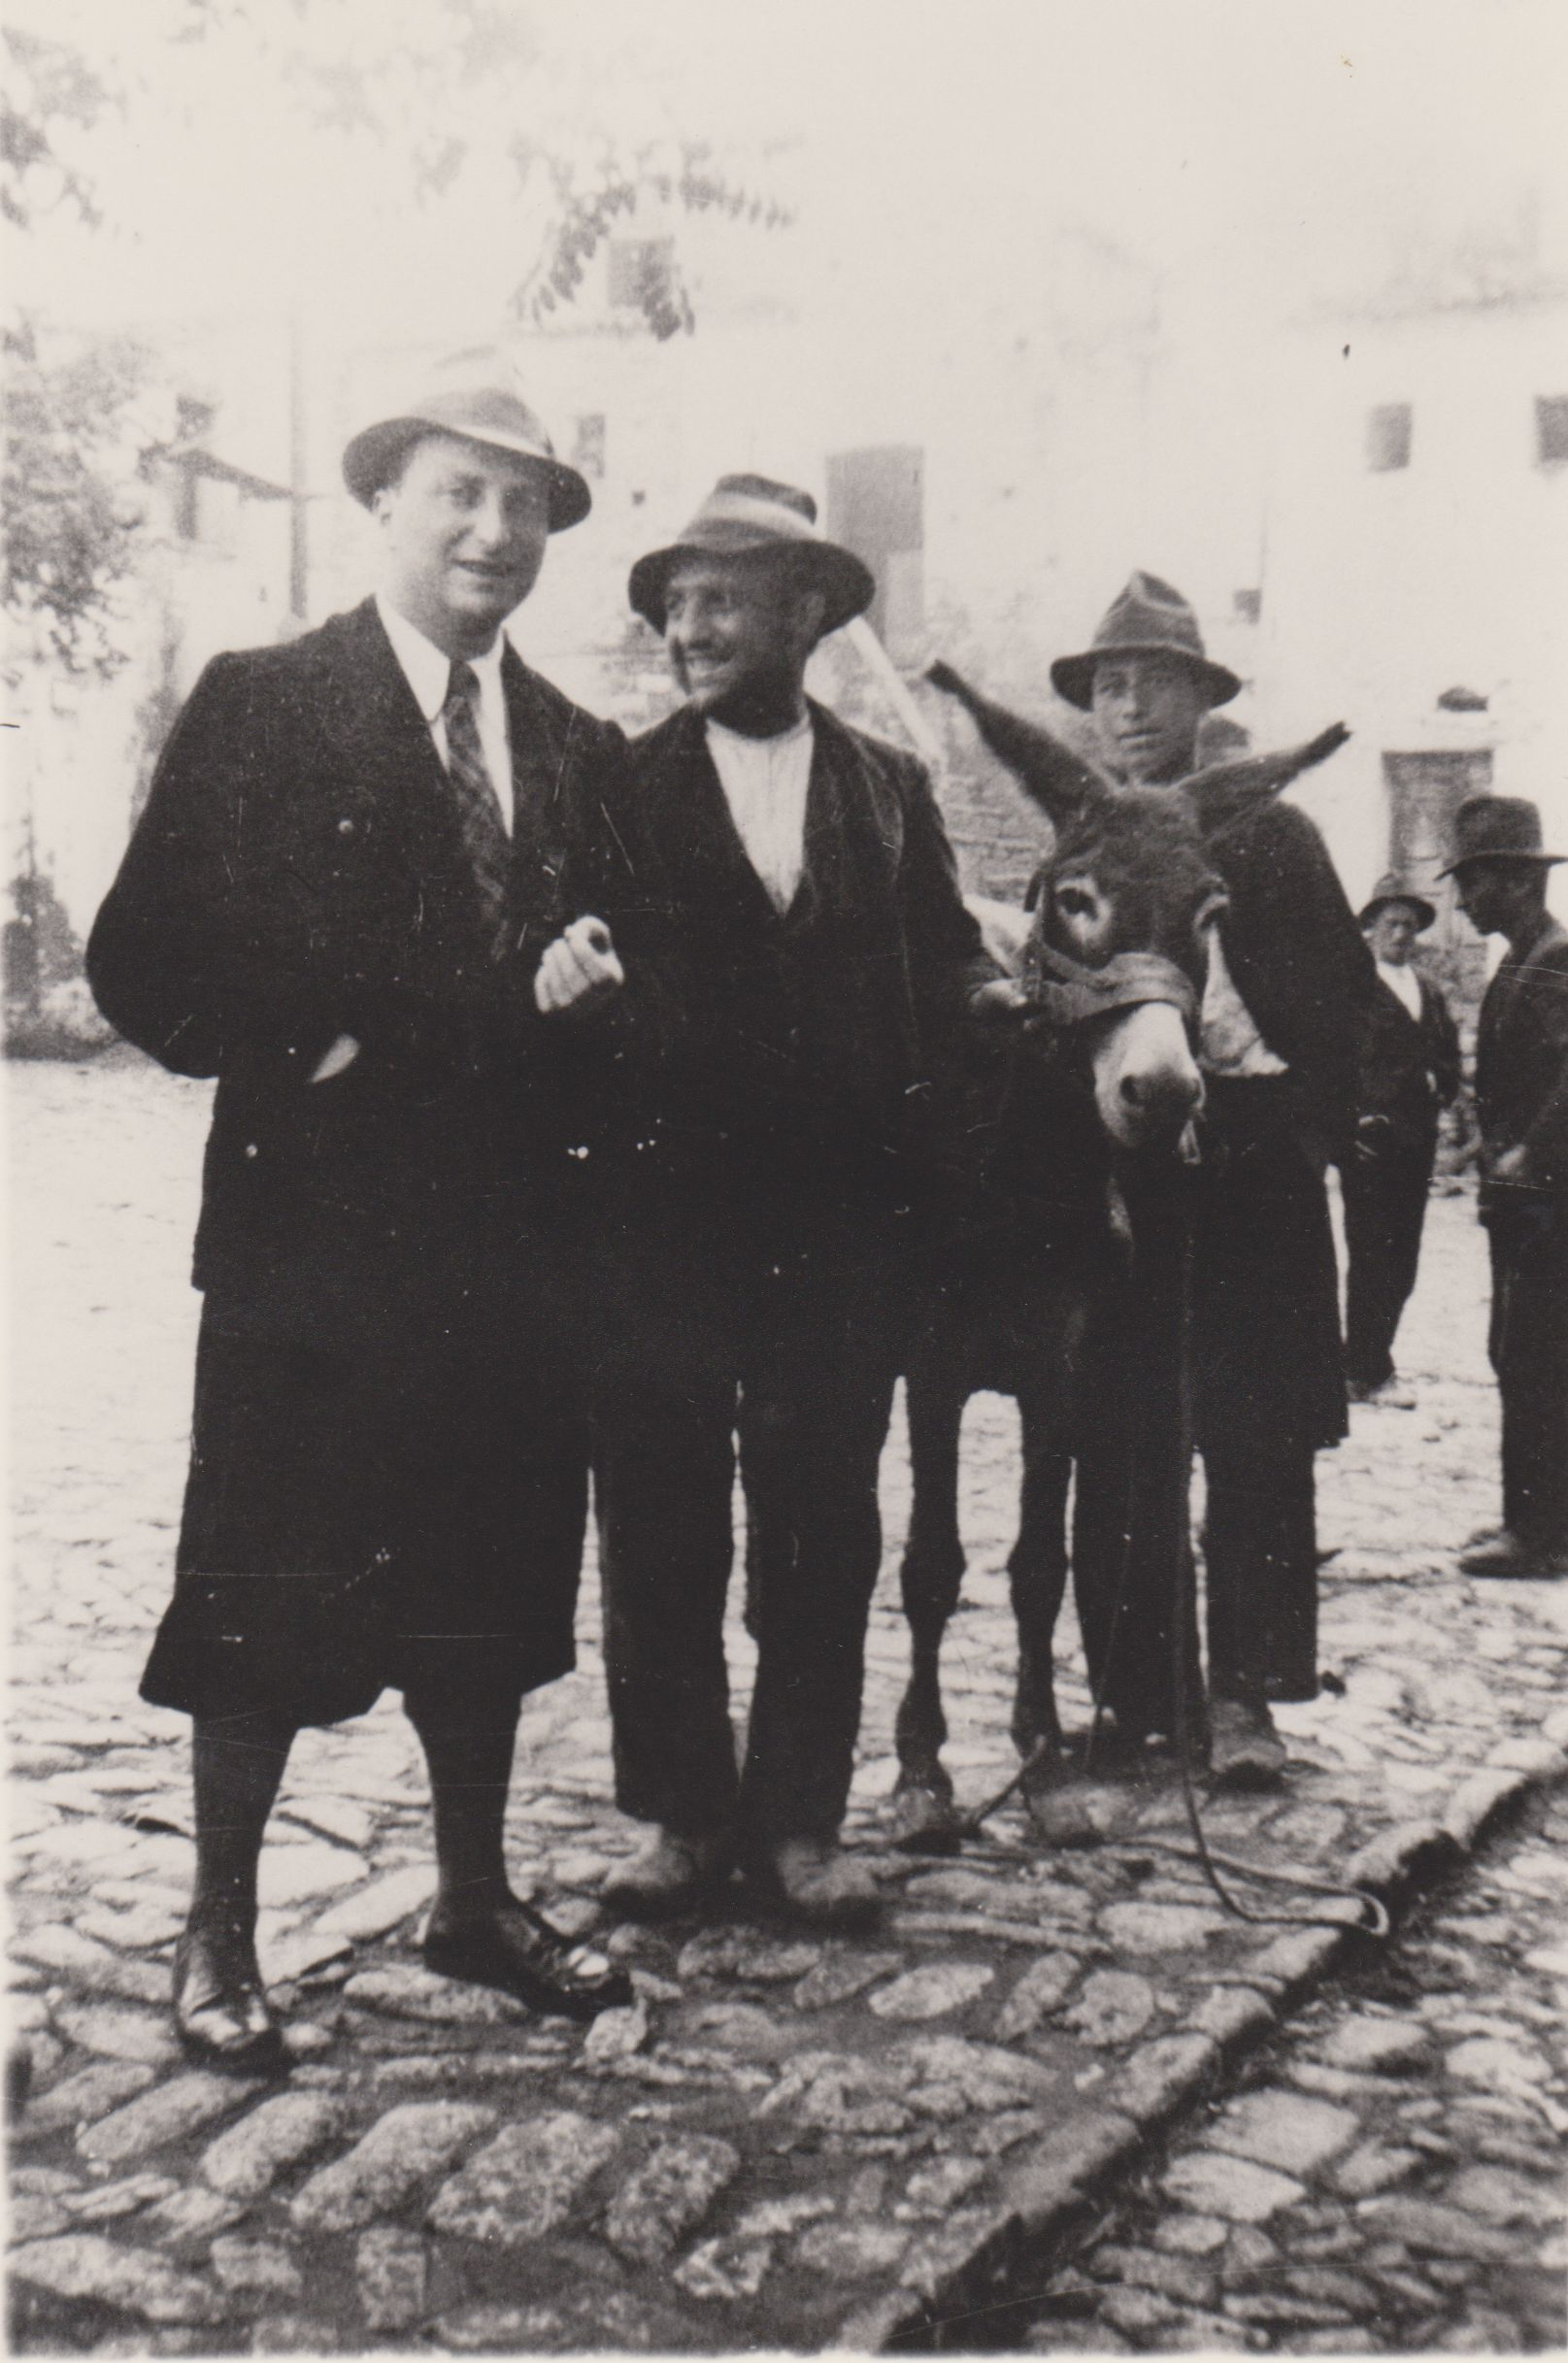 Levi (seen here on far left), while in exhile in Aliano